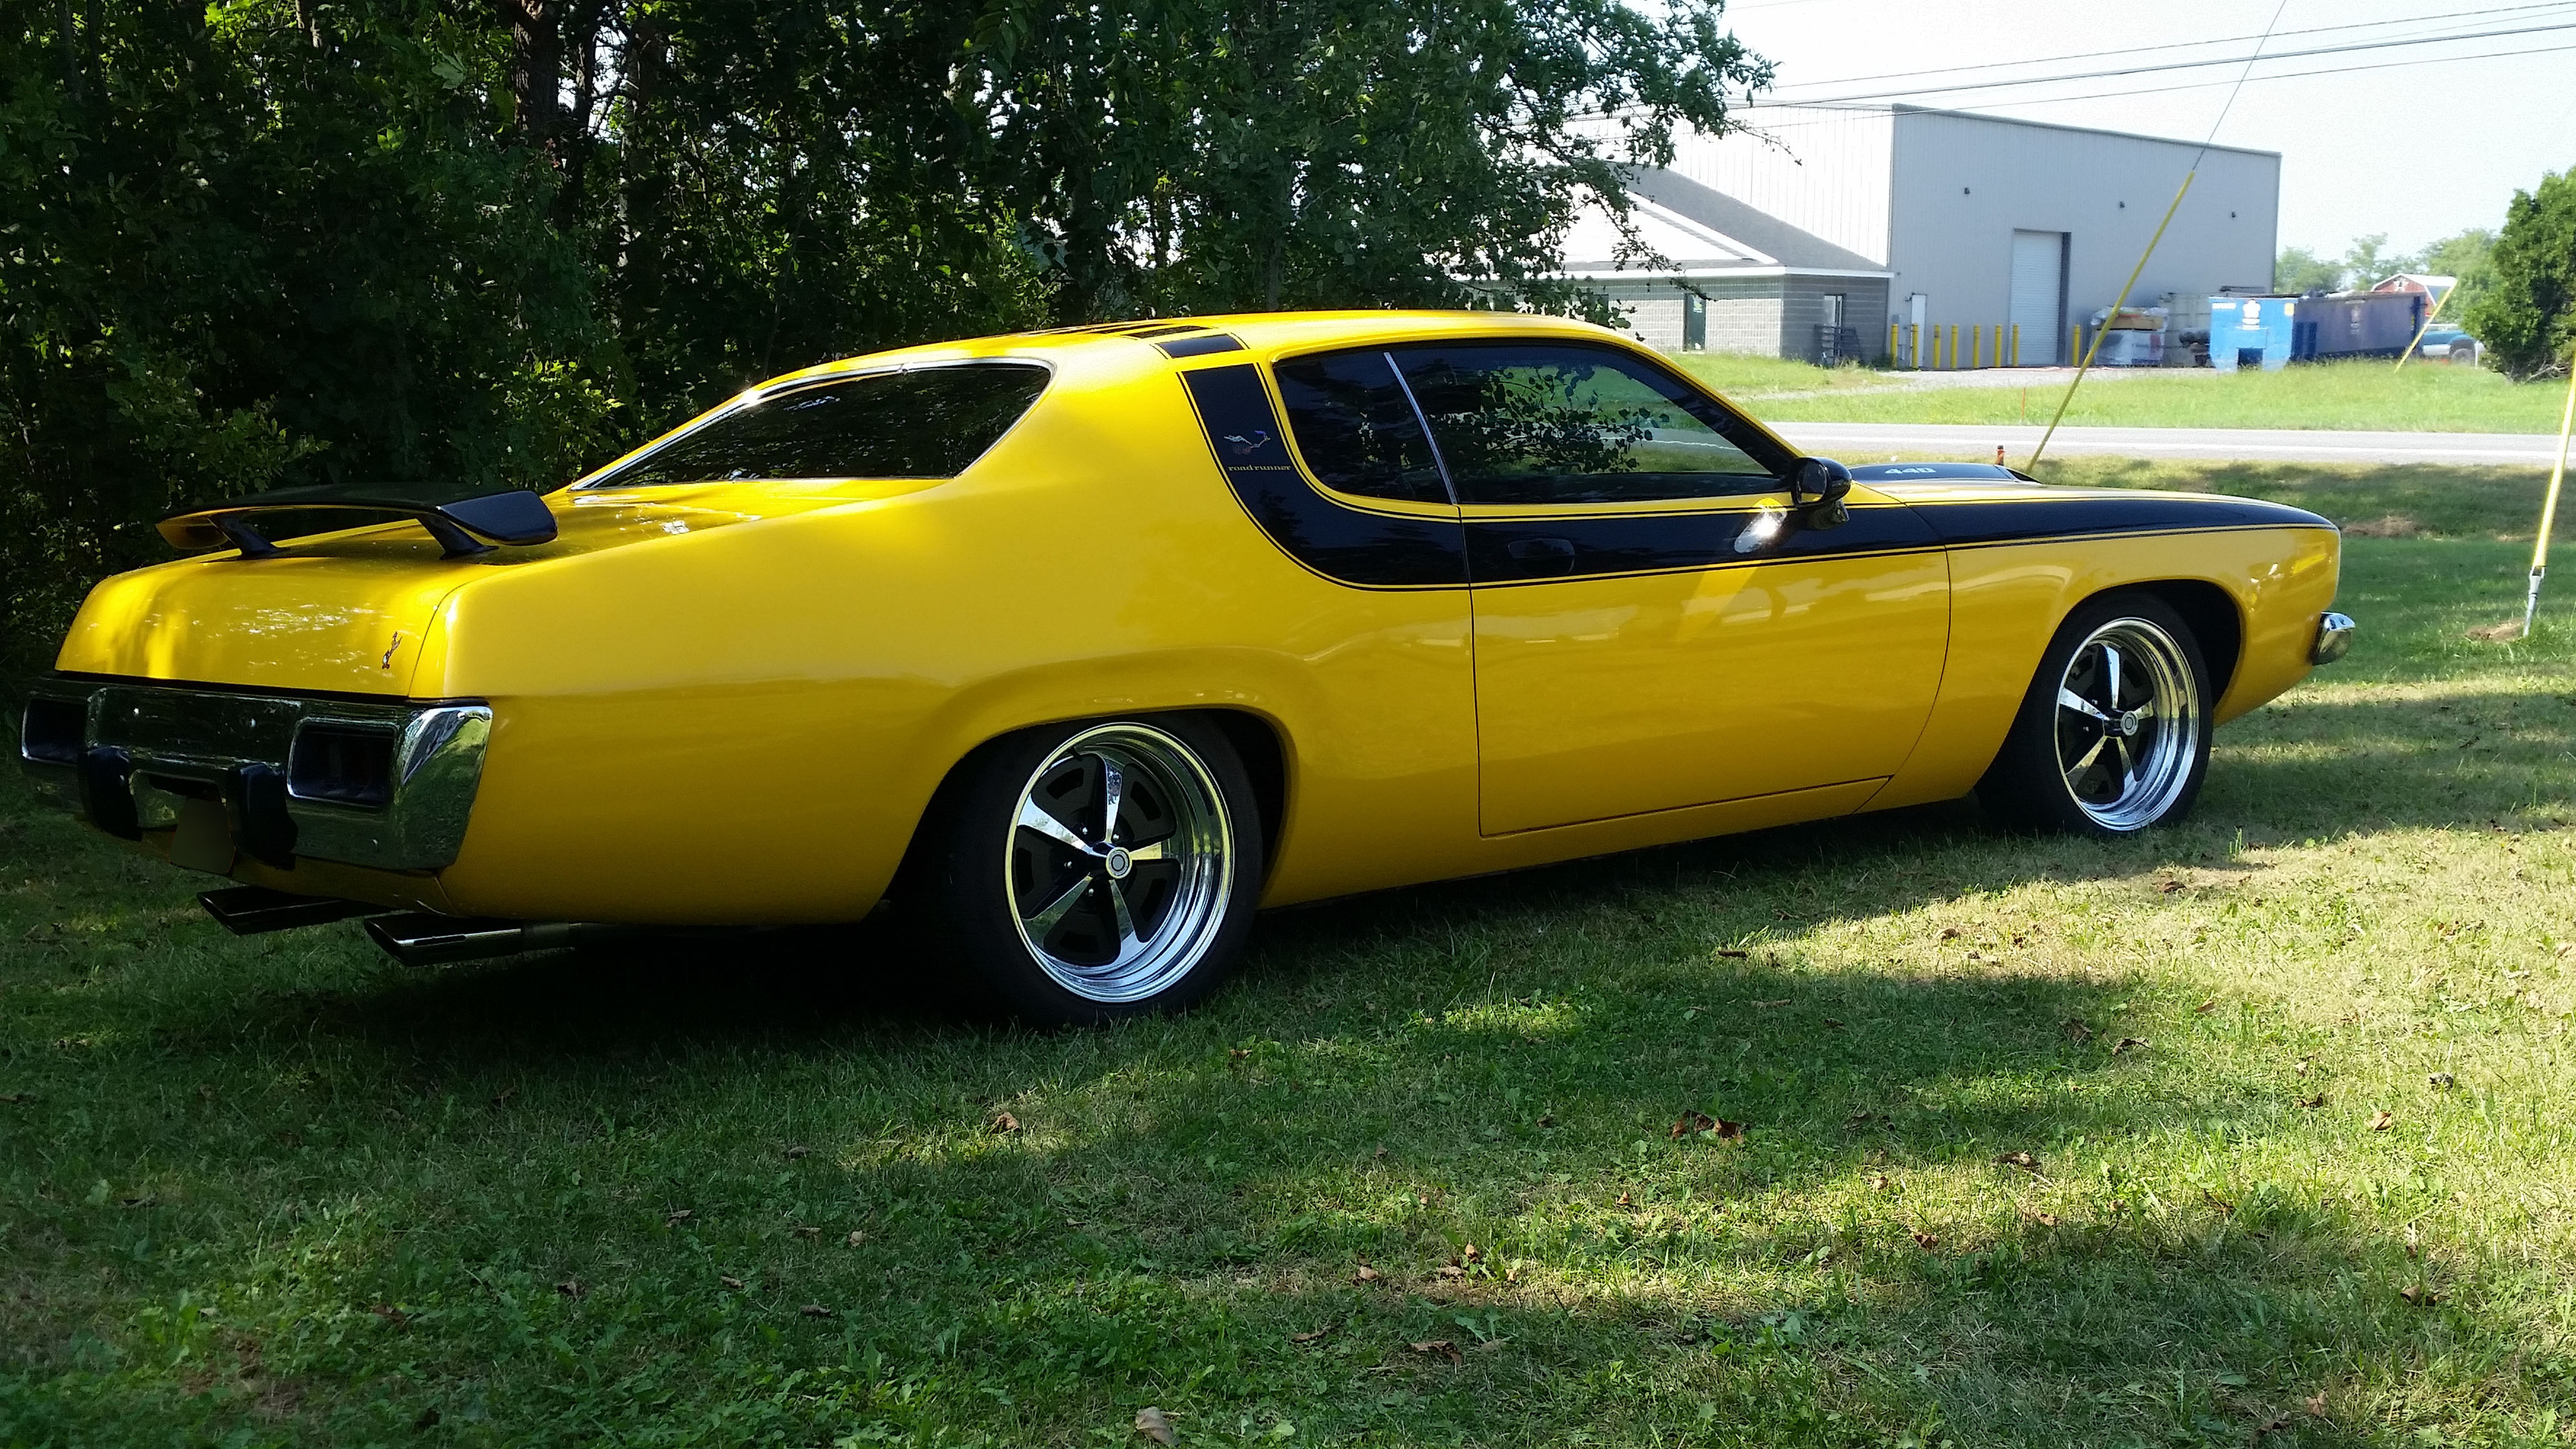 1974 Plymouth Road Runner - S & S Auto Body of Clarence Inc.